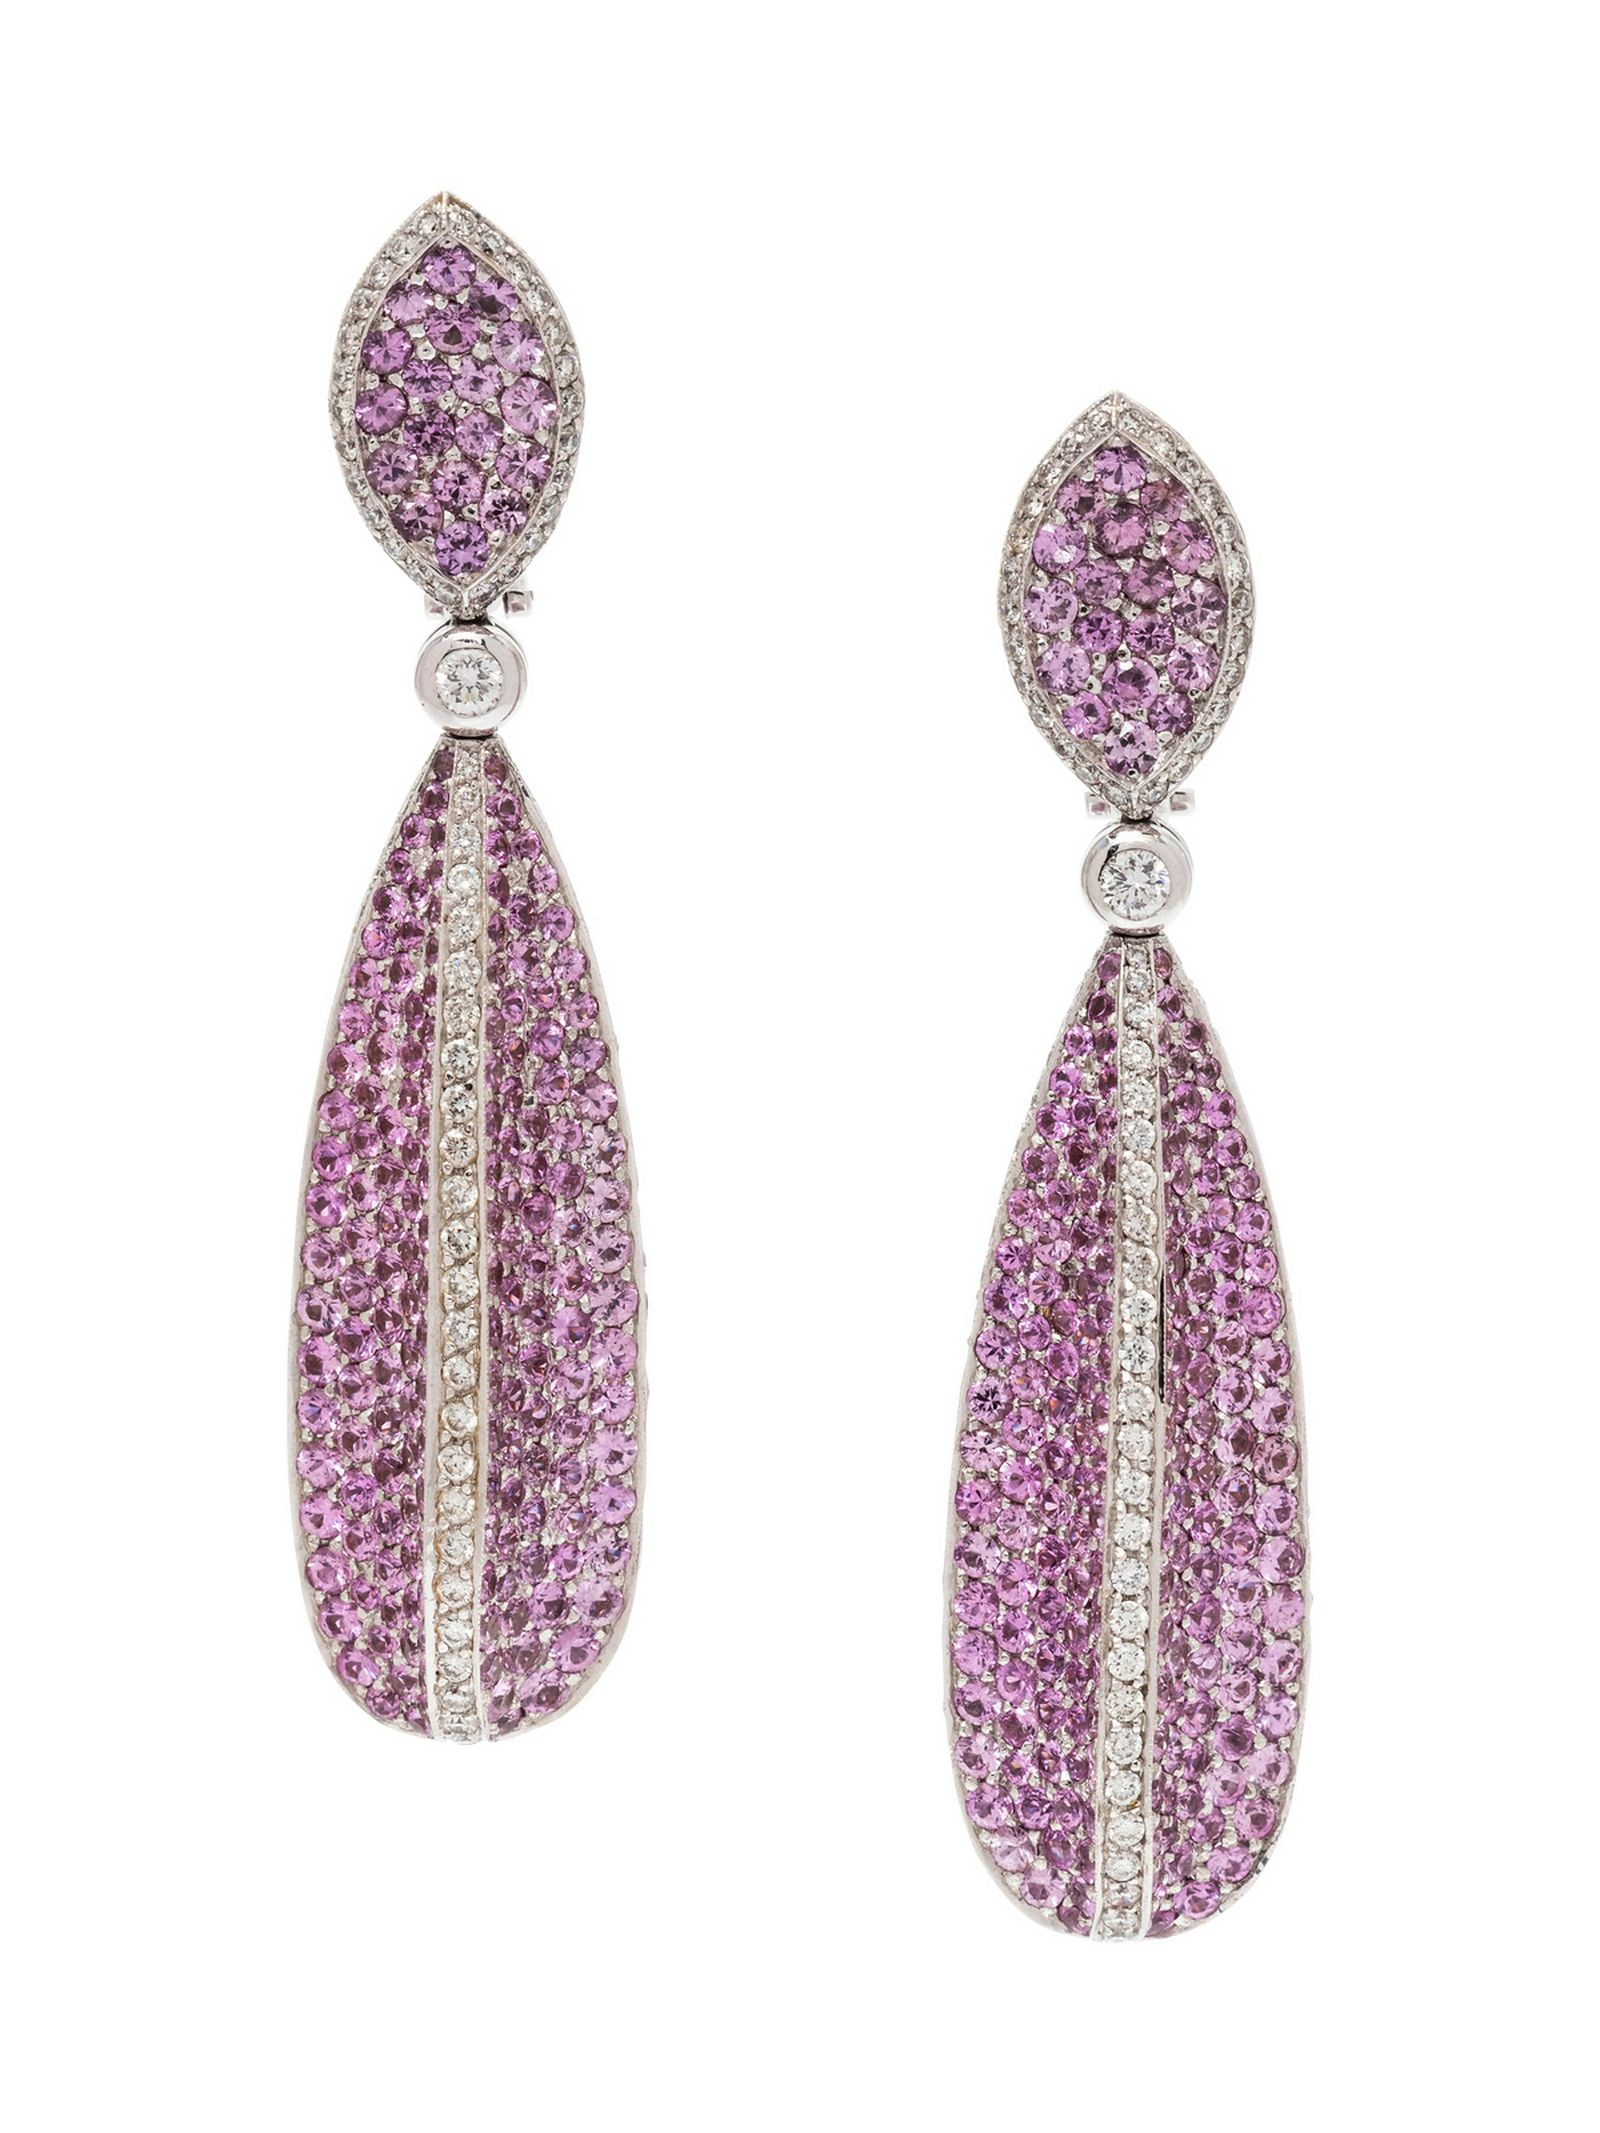 A Pair of 18 Karat White Gold, Pink Sapphire and